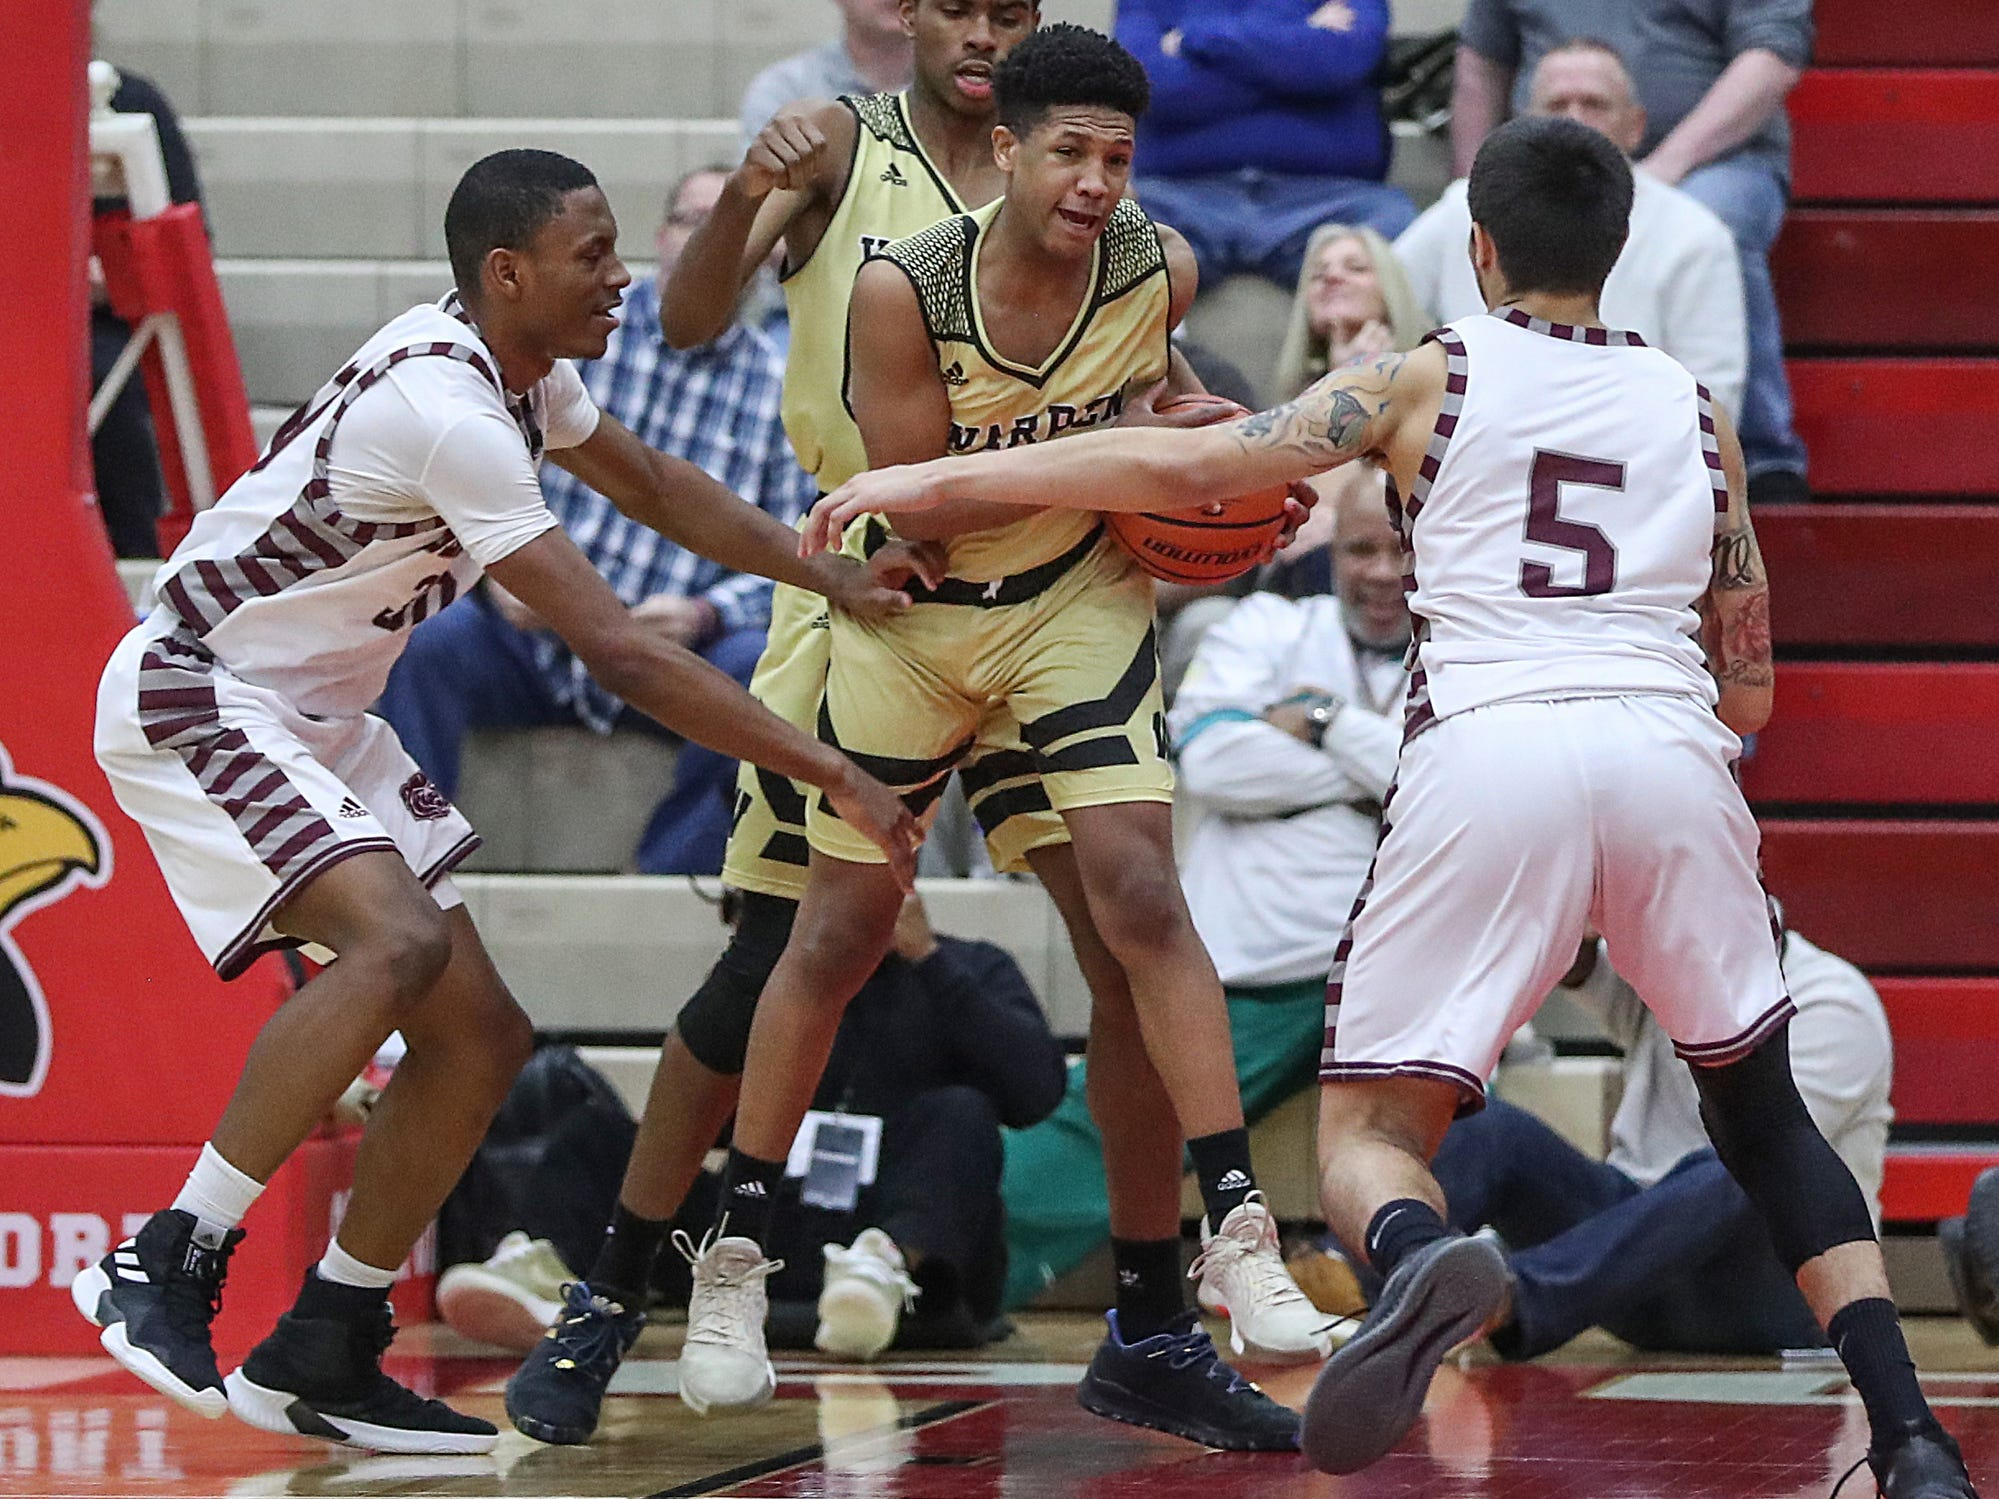 Warren Central Warriors Malik Stanley (12) is fouled late in the fourth quarter of Marion County tournament finals at Southport High School in Indianapolis, Monday, Jan. 14, 2019. The Warriors won 60-56. The victory marks a 46-game winning streak for the Warriors, the third-longest in state history.